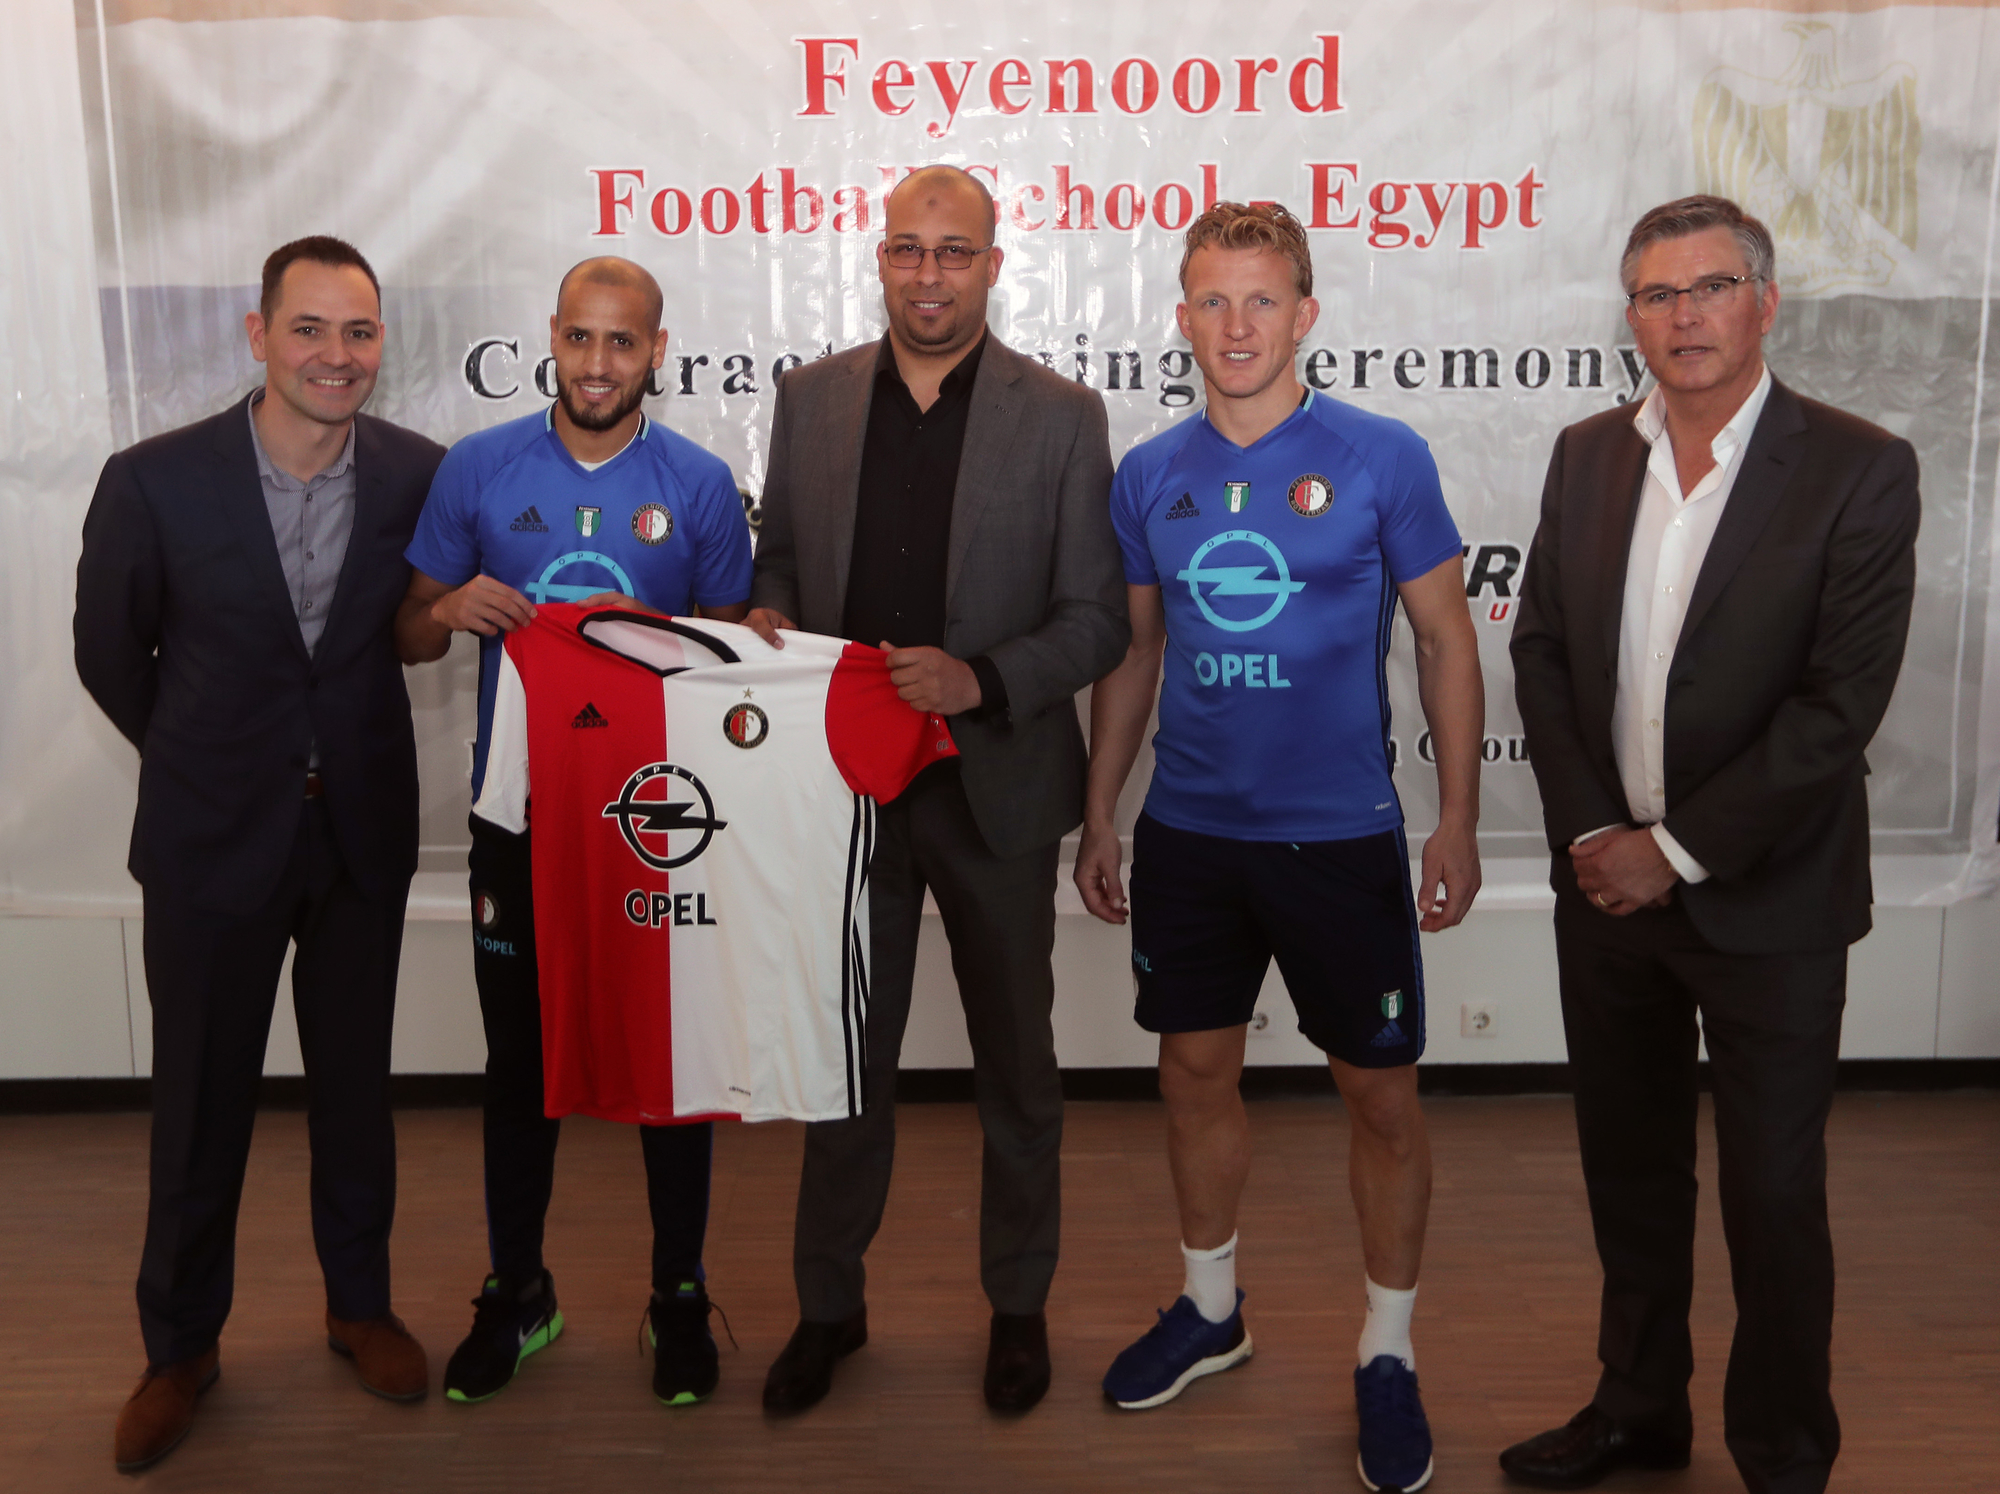 Partnership agreement for Feyenoord football academy in Egypt